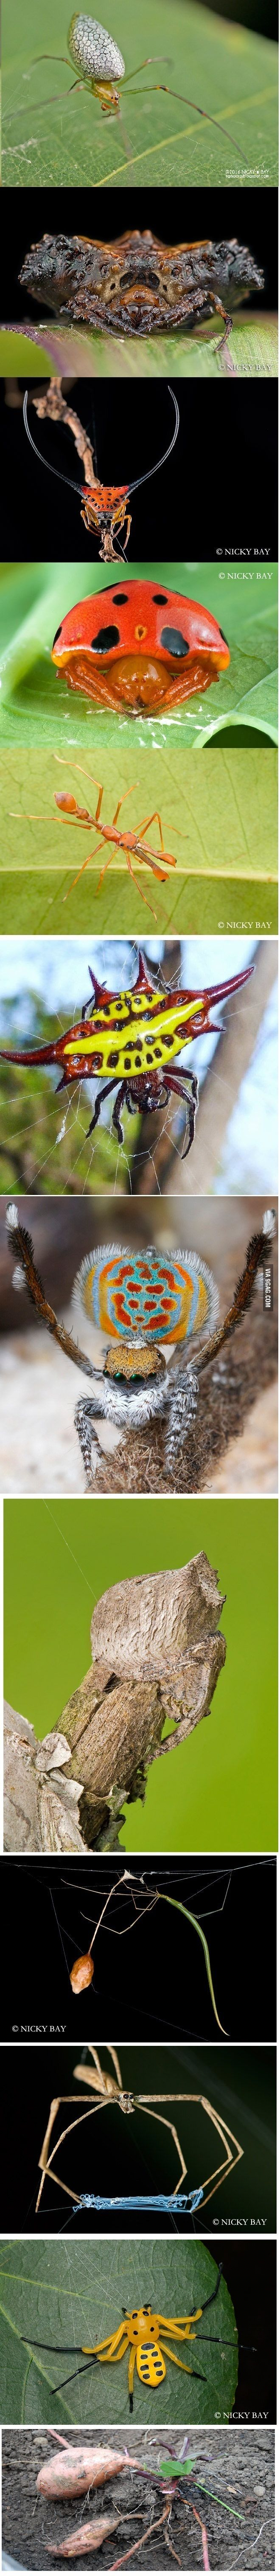 The most bizarre spiders species